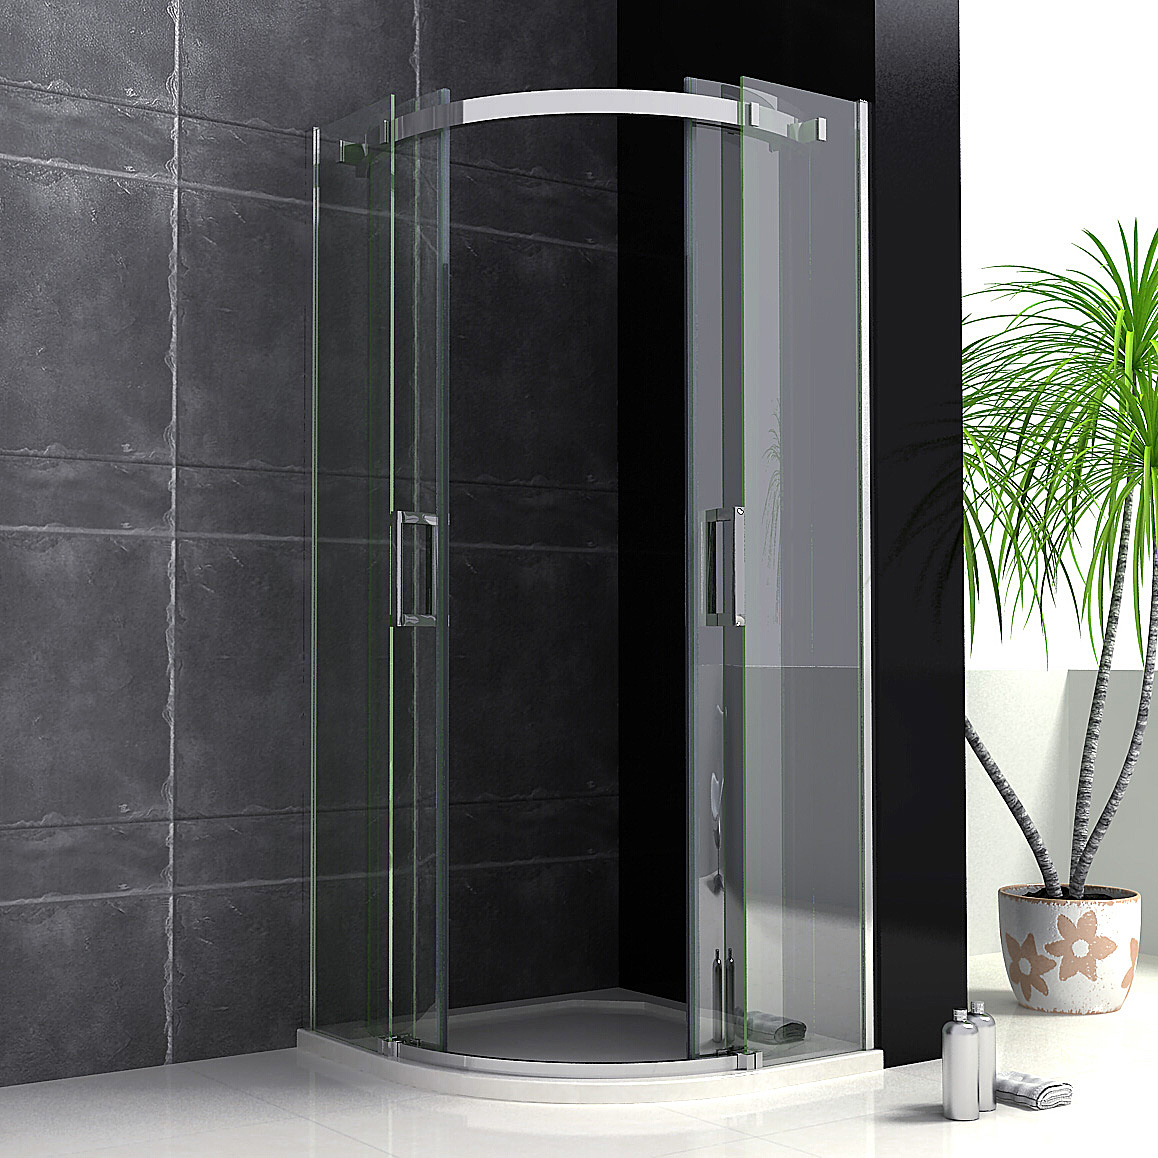 Luxury quadrant shower enclosure tray walk in corner cubicle 8mm easyclean glass ebay - Luxury shower cubicles ...